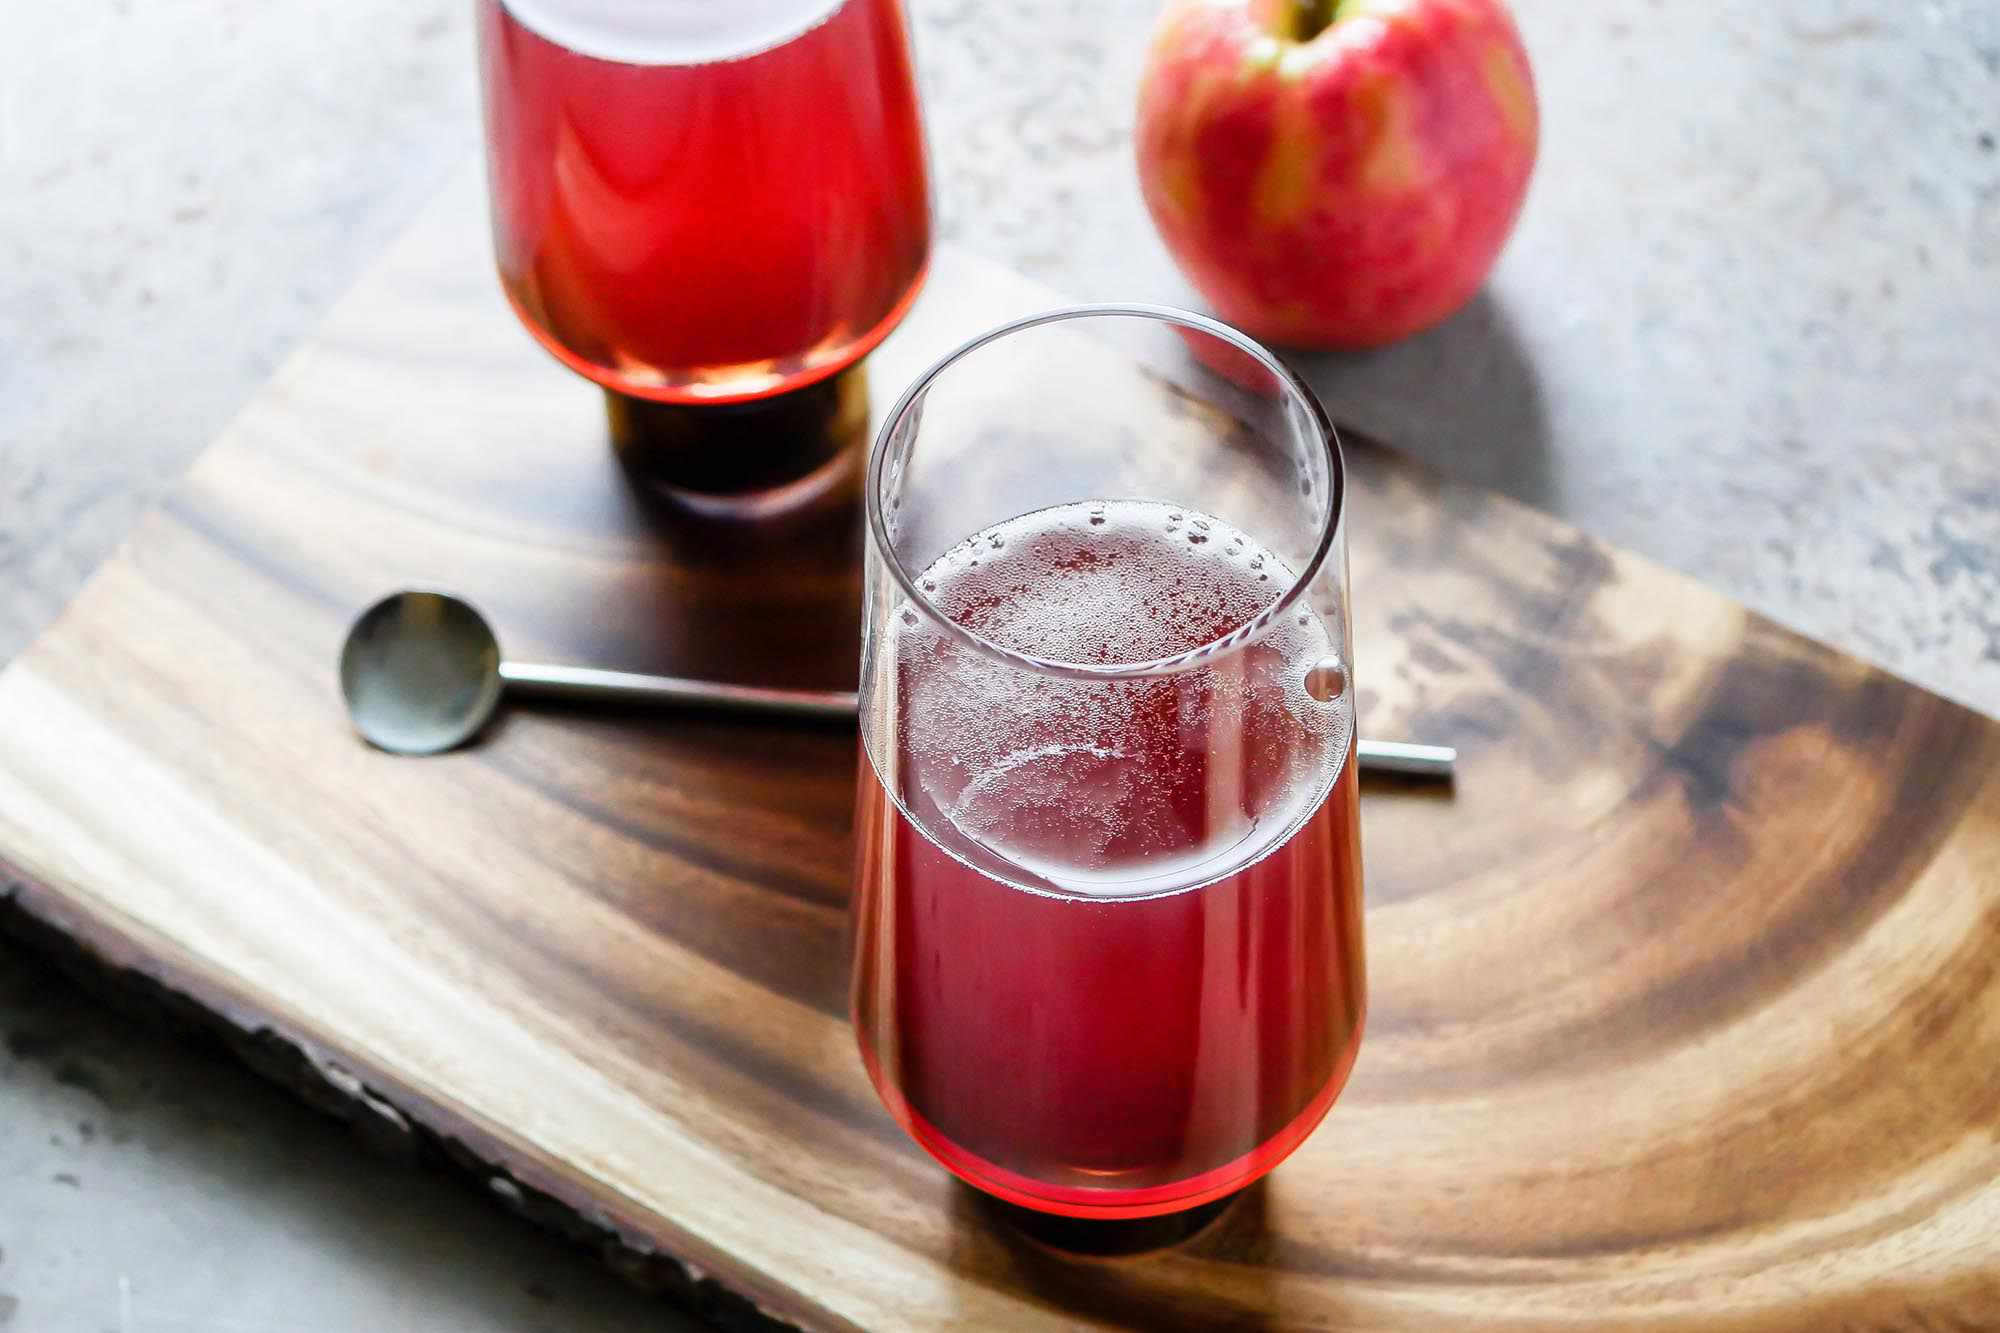 Hard Cider and Pomegranate Mimosa on a wooden board with an apple, stir spoon and second glass behind it.